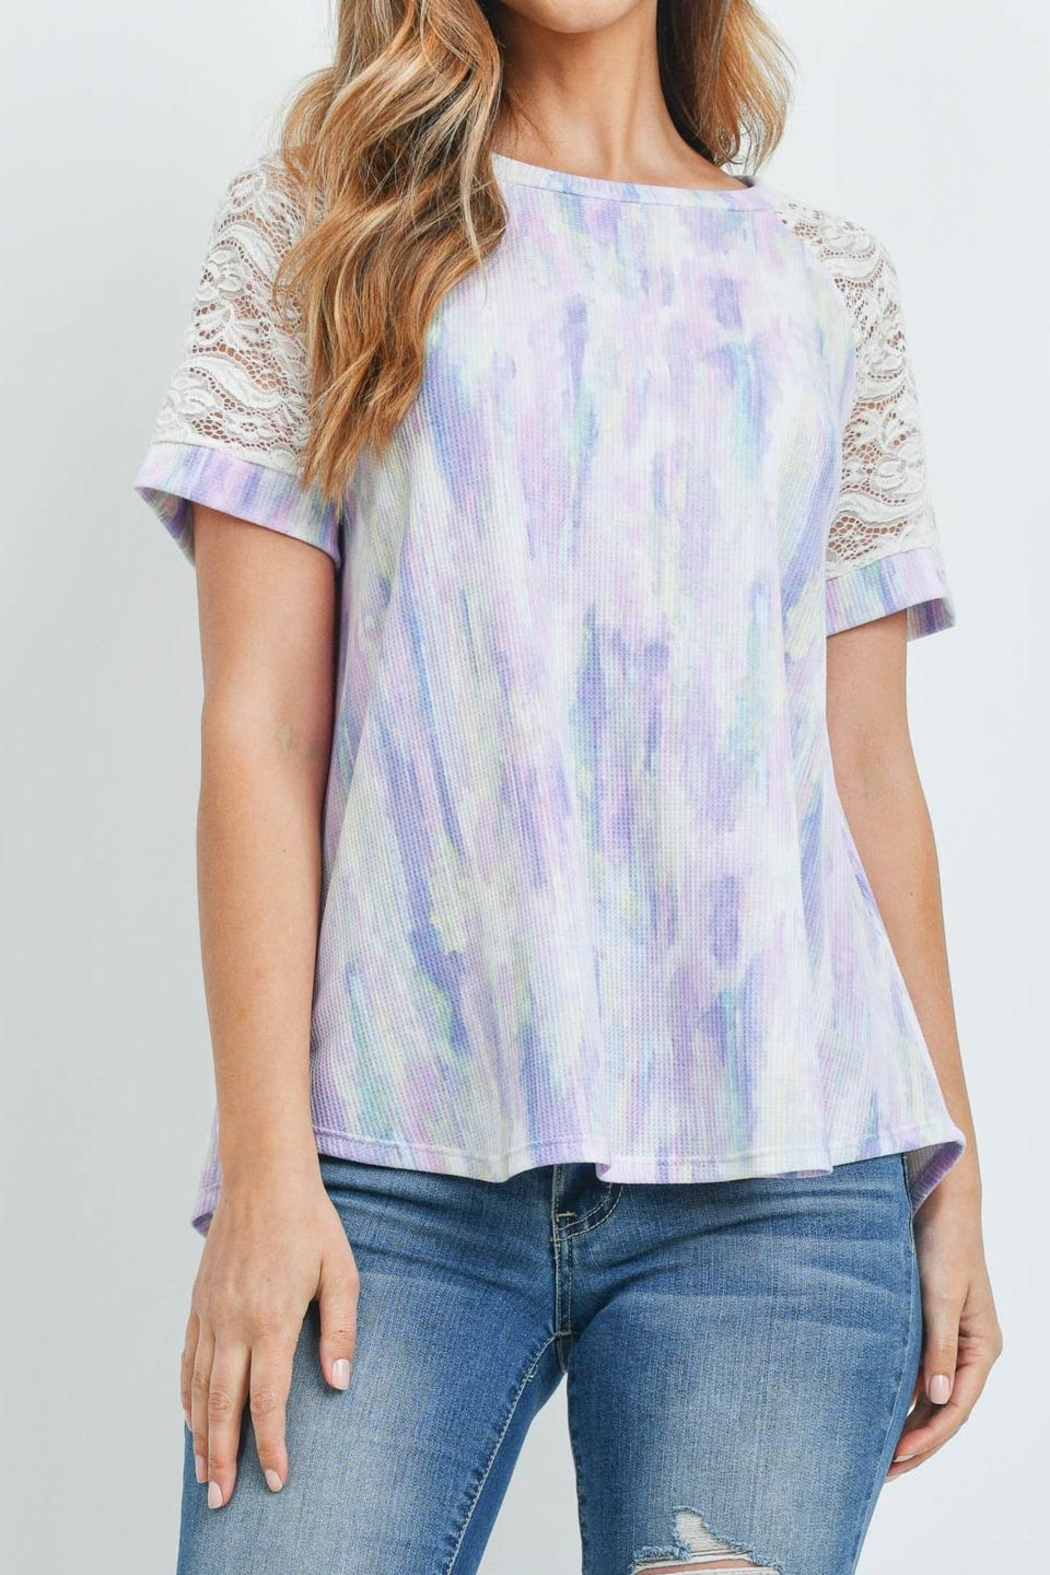 Riah Fashion Lace-Sleeve-Thermal-Tie-Dye-Top - Front Cropped Image